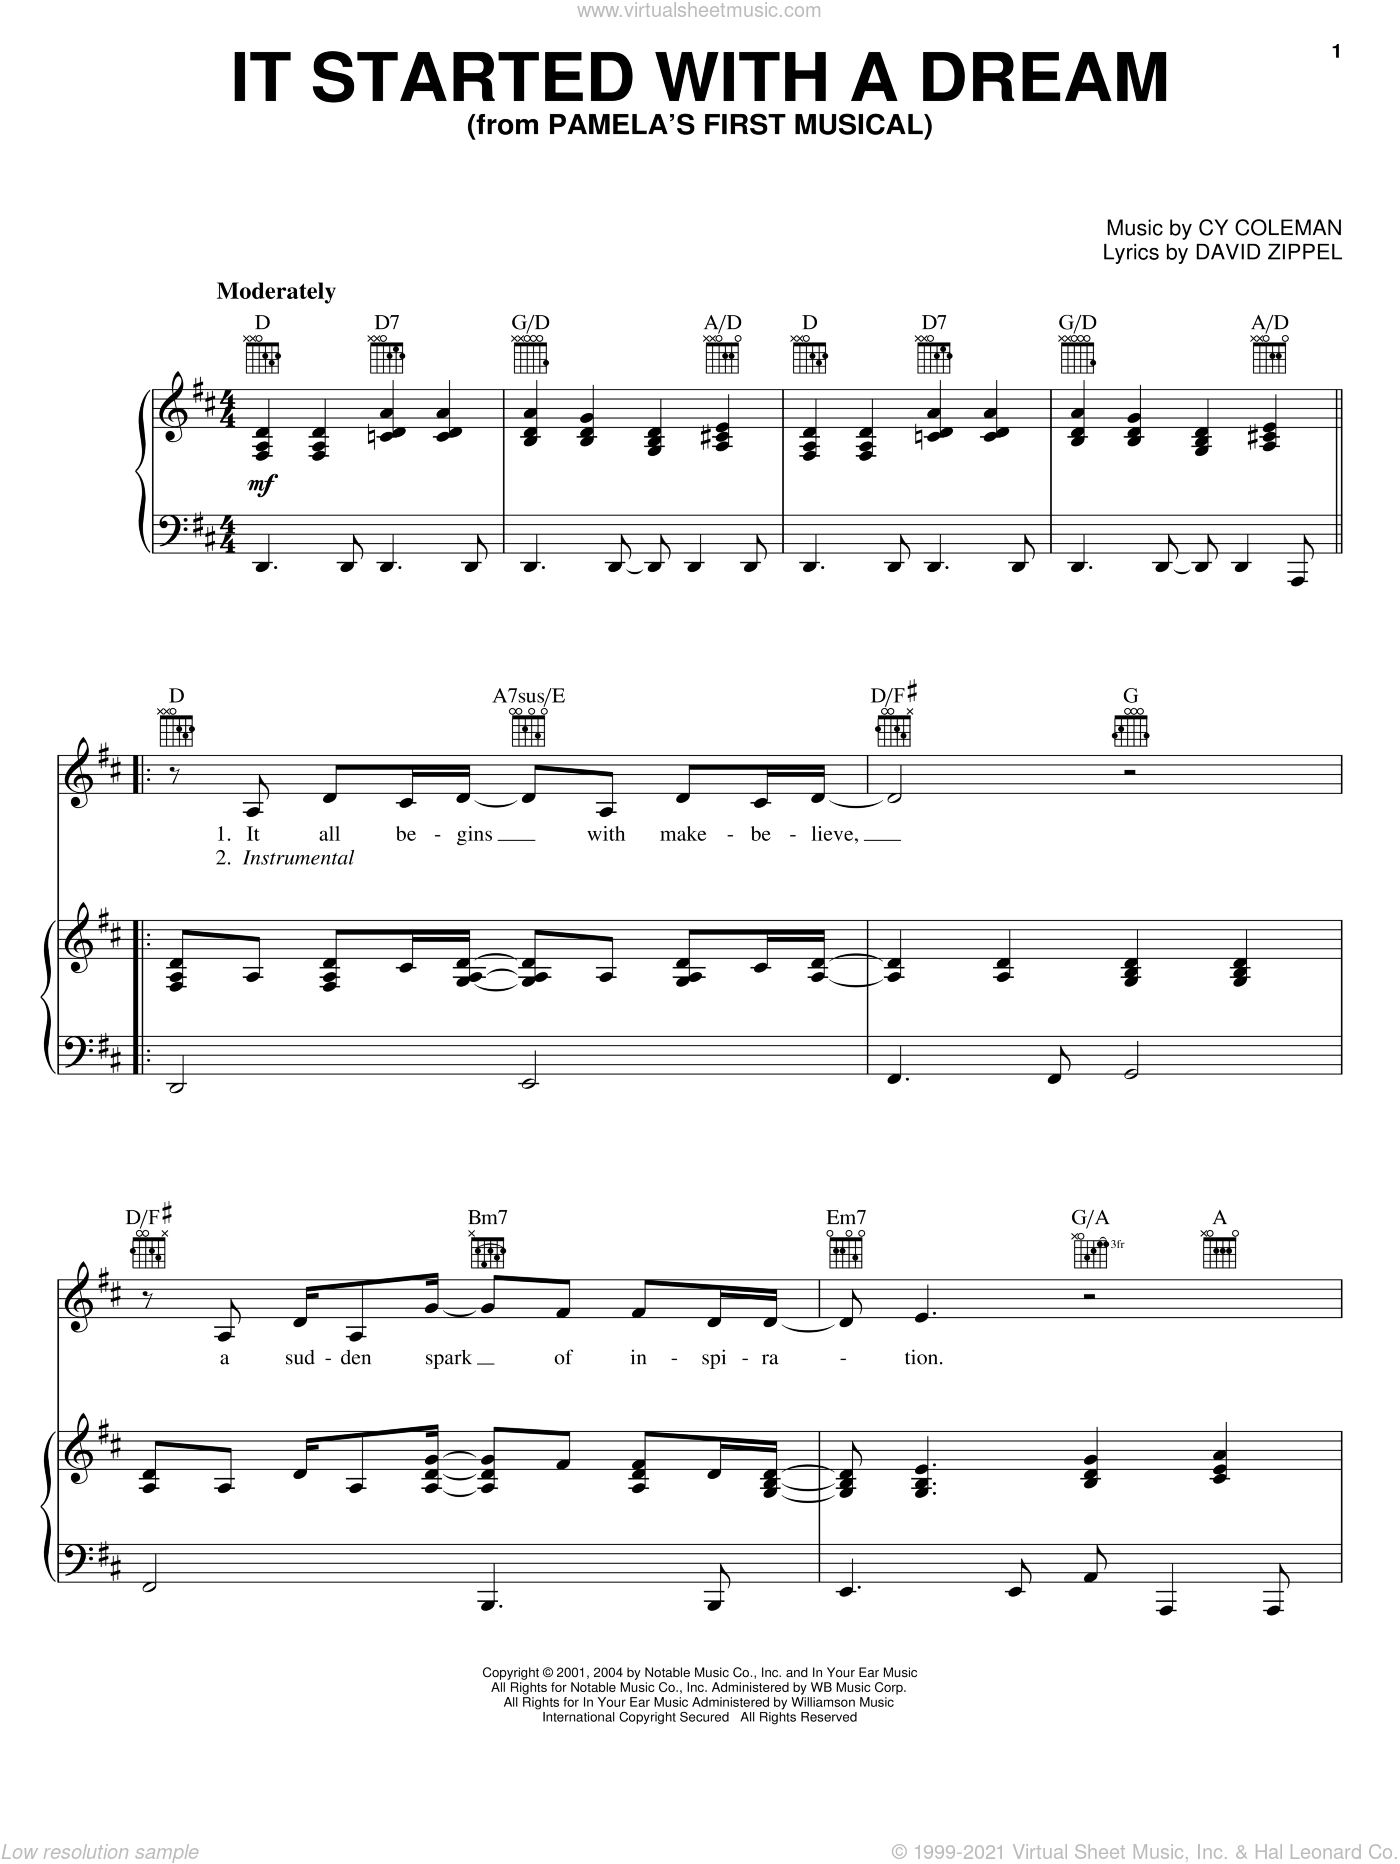 It Started With A Dream sheet music for voice, piano or guitar by David Zippel and Cy Coleman, intermediate skill level